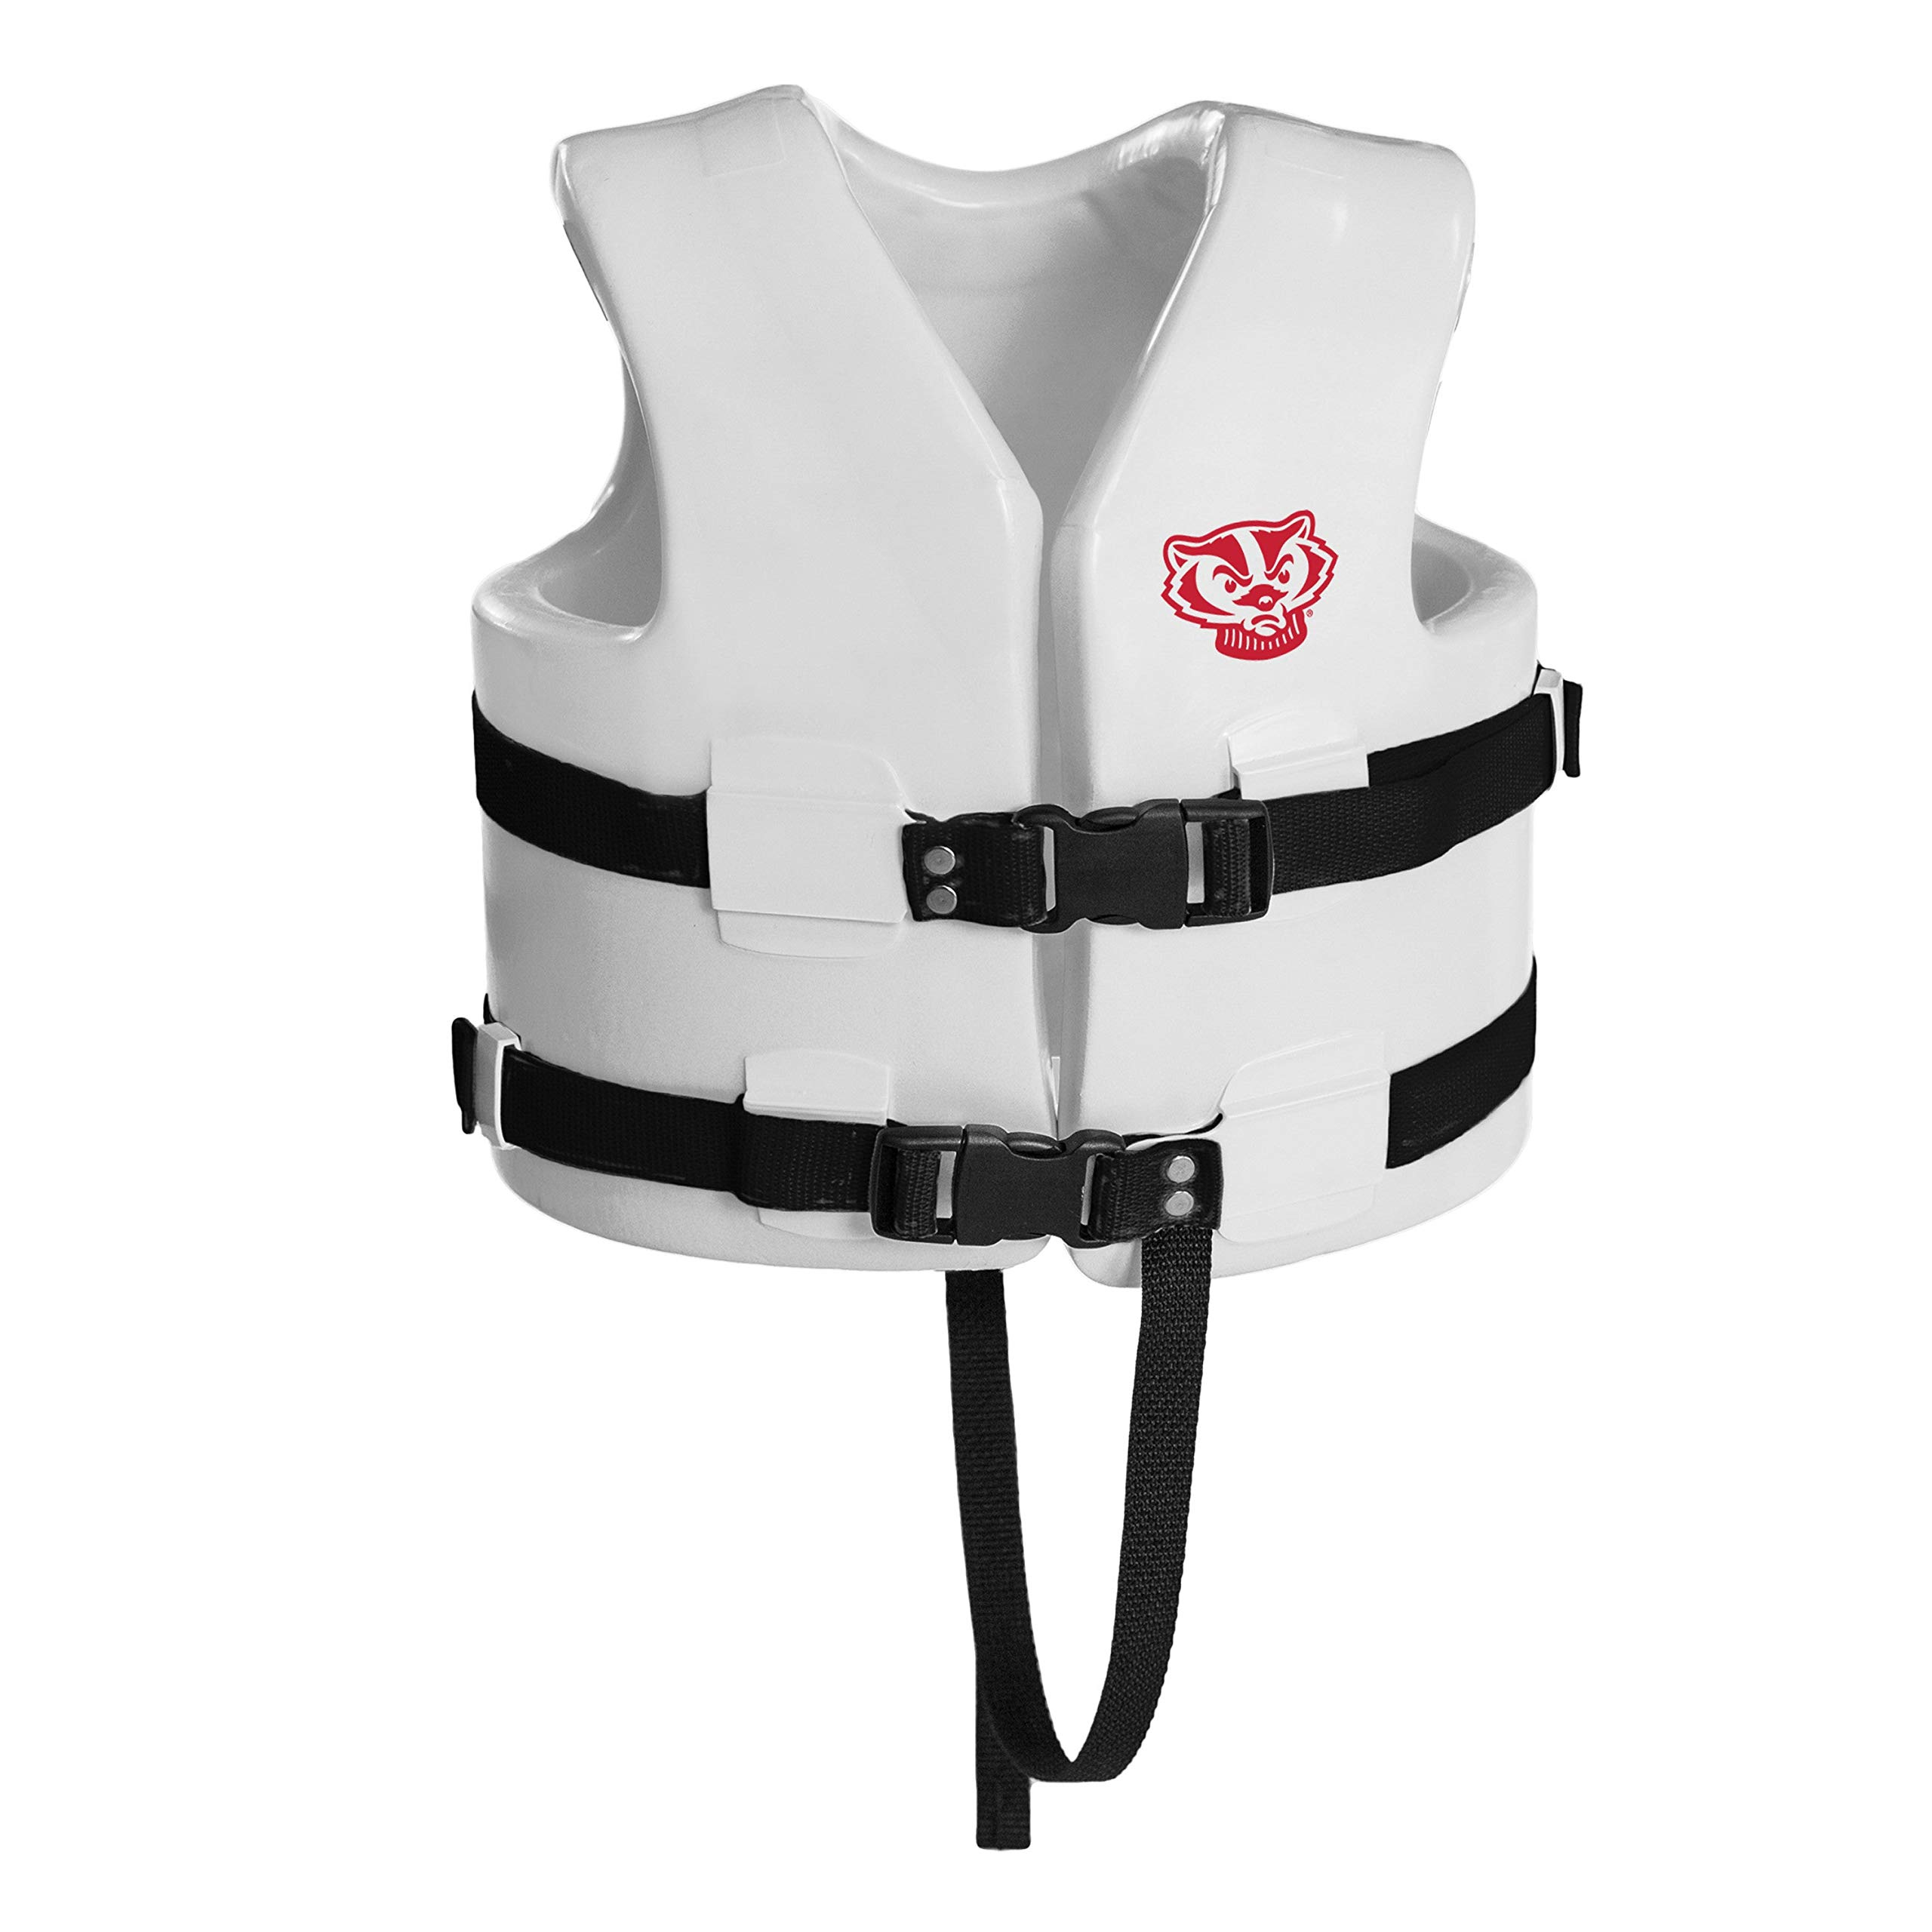 Texas Recreation Corporation Texas Rec USCG Approved Child Water Vest White Finish Wisconsin Badgers X-Small Chest 21-23